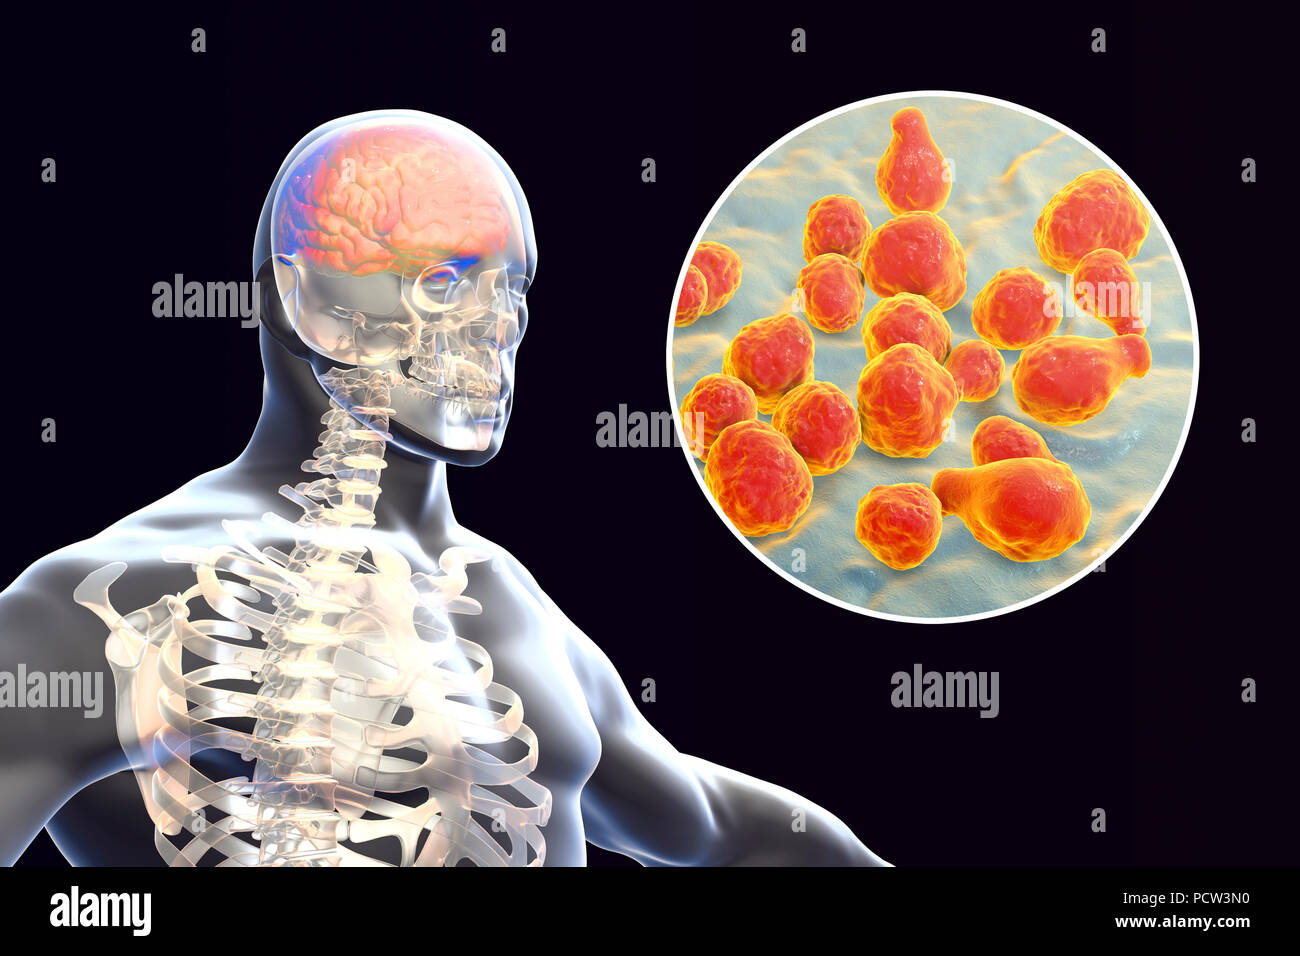 Meningitis caused by fungi Cryptococcus neoformans, computer illustration. C. neoformans is a yeast-like fungus that reproduces by budding. An acidic mucopolysaccharide capsule completely encloses the fungus. It can cause the disease cryptococcosis, especially in immune deficient patients, such as those with AIDS (acquired immunodeficiency syndrome). The infection may cause meningitis, and may also be located in the lungs, skin or other body regions. The most common clinical form is meningoencephalitis. - Stock Image